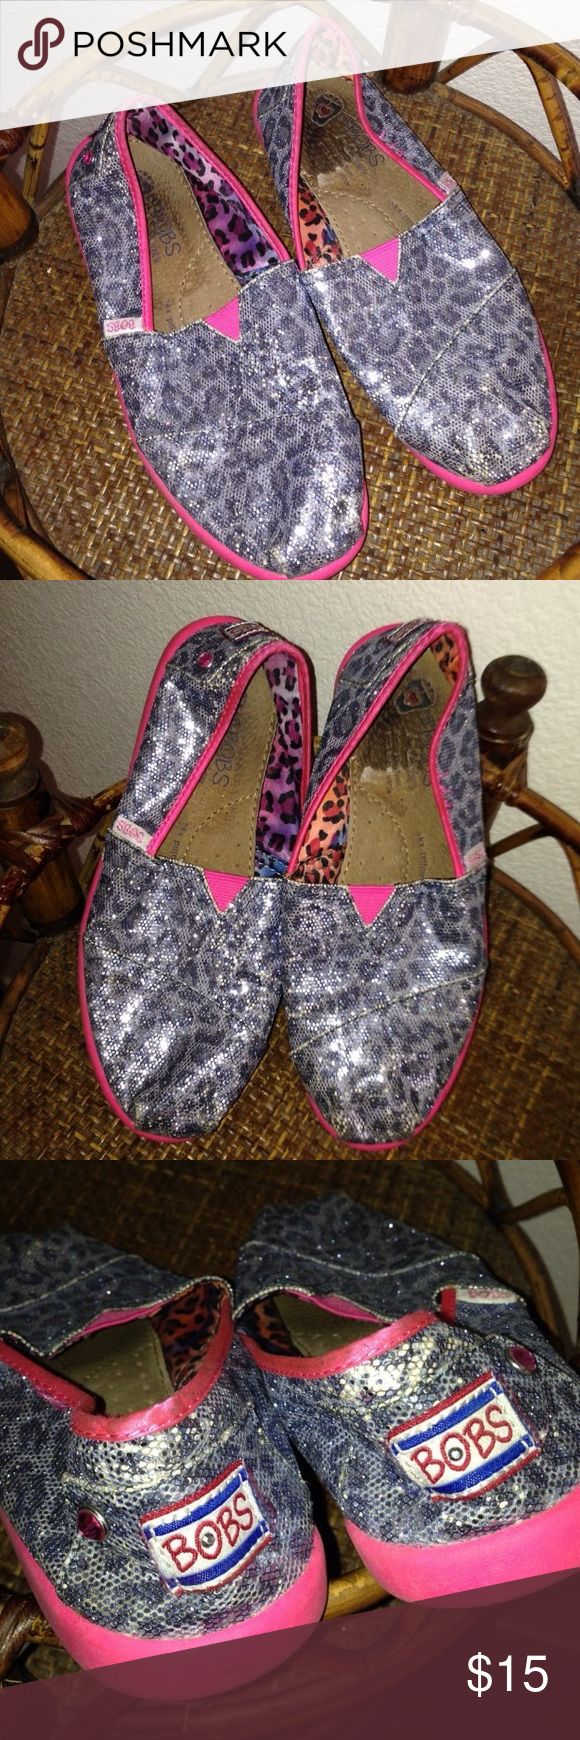 ▪️Skechers Zebra Flats▪️ Purchase with Purpose! #VegasStrong🙏🏼💙 Skechers BOBS Zebra Sequin Flats in size youth 3 fits a women's 5. In VERY GOOD condition! My prices change often for sales & specials, so buy your favorite items when prices are low! Thank you for shopping my closet. Mahalo!🤙🏼♥️ Skechers Shoes